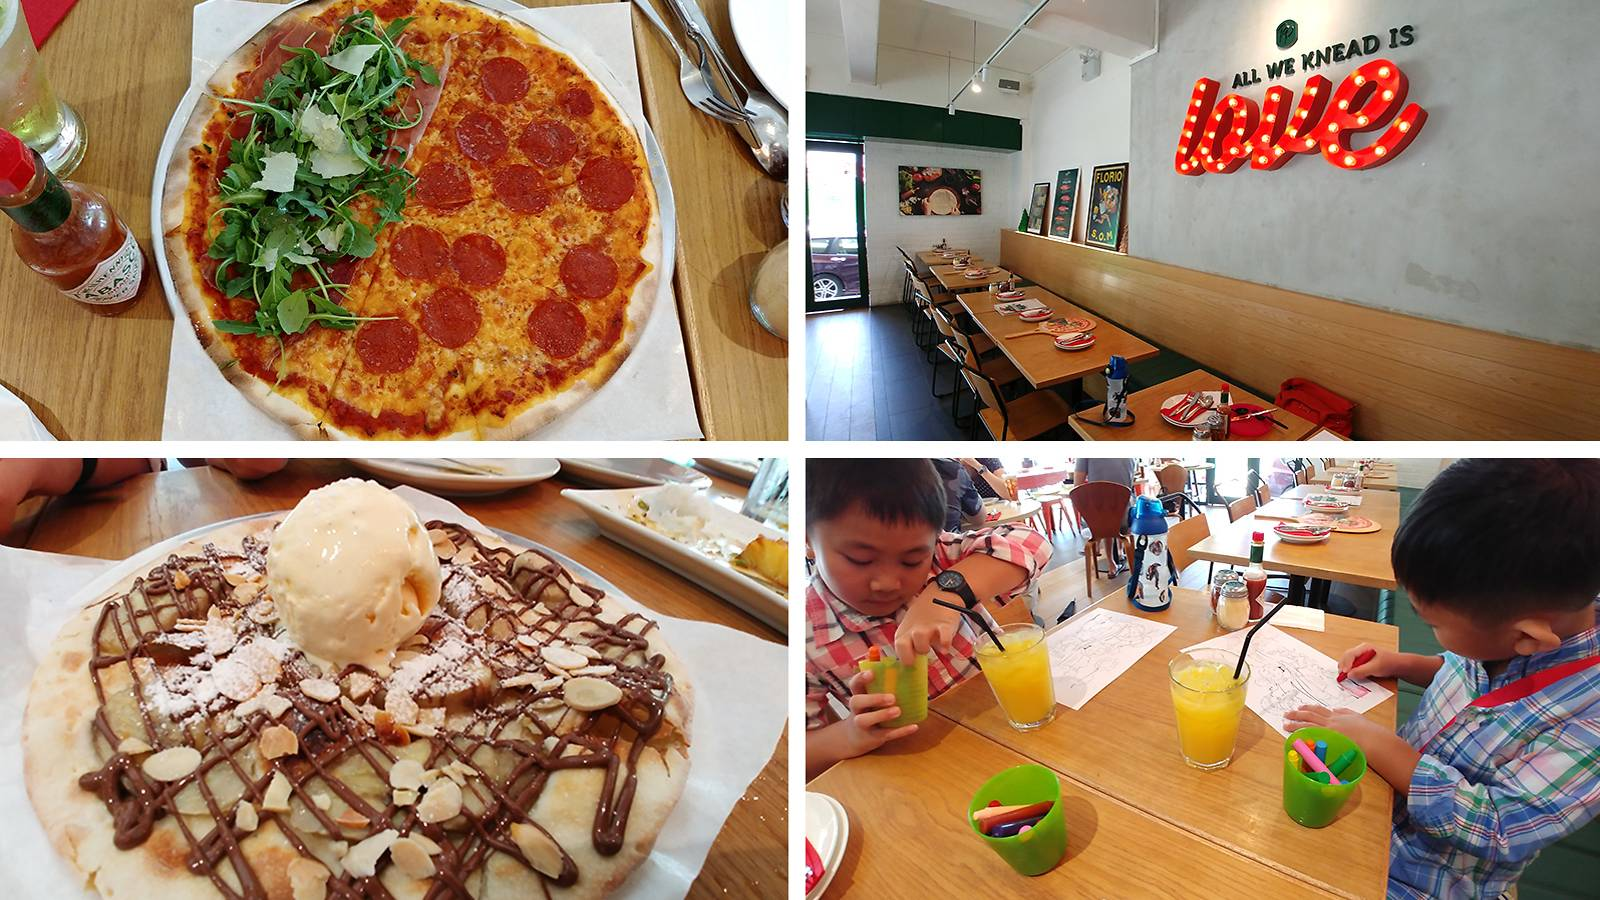 Kids-Restaurant-Review-Peperoni-Pizzeria-MAIN